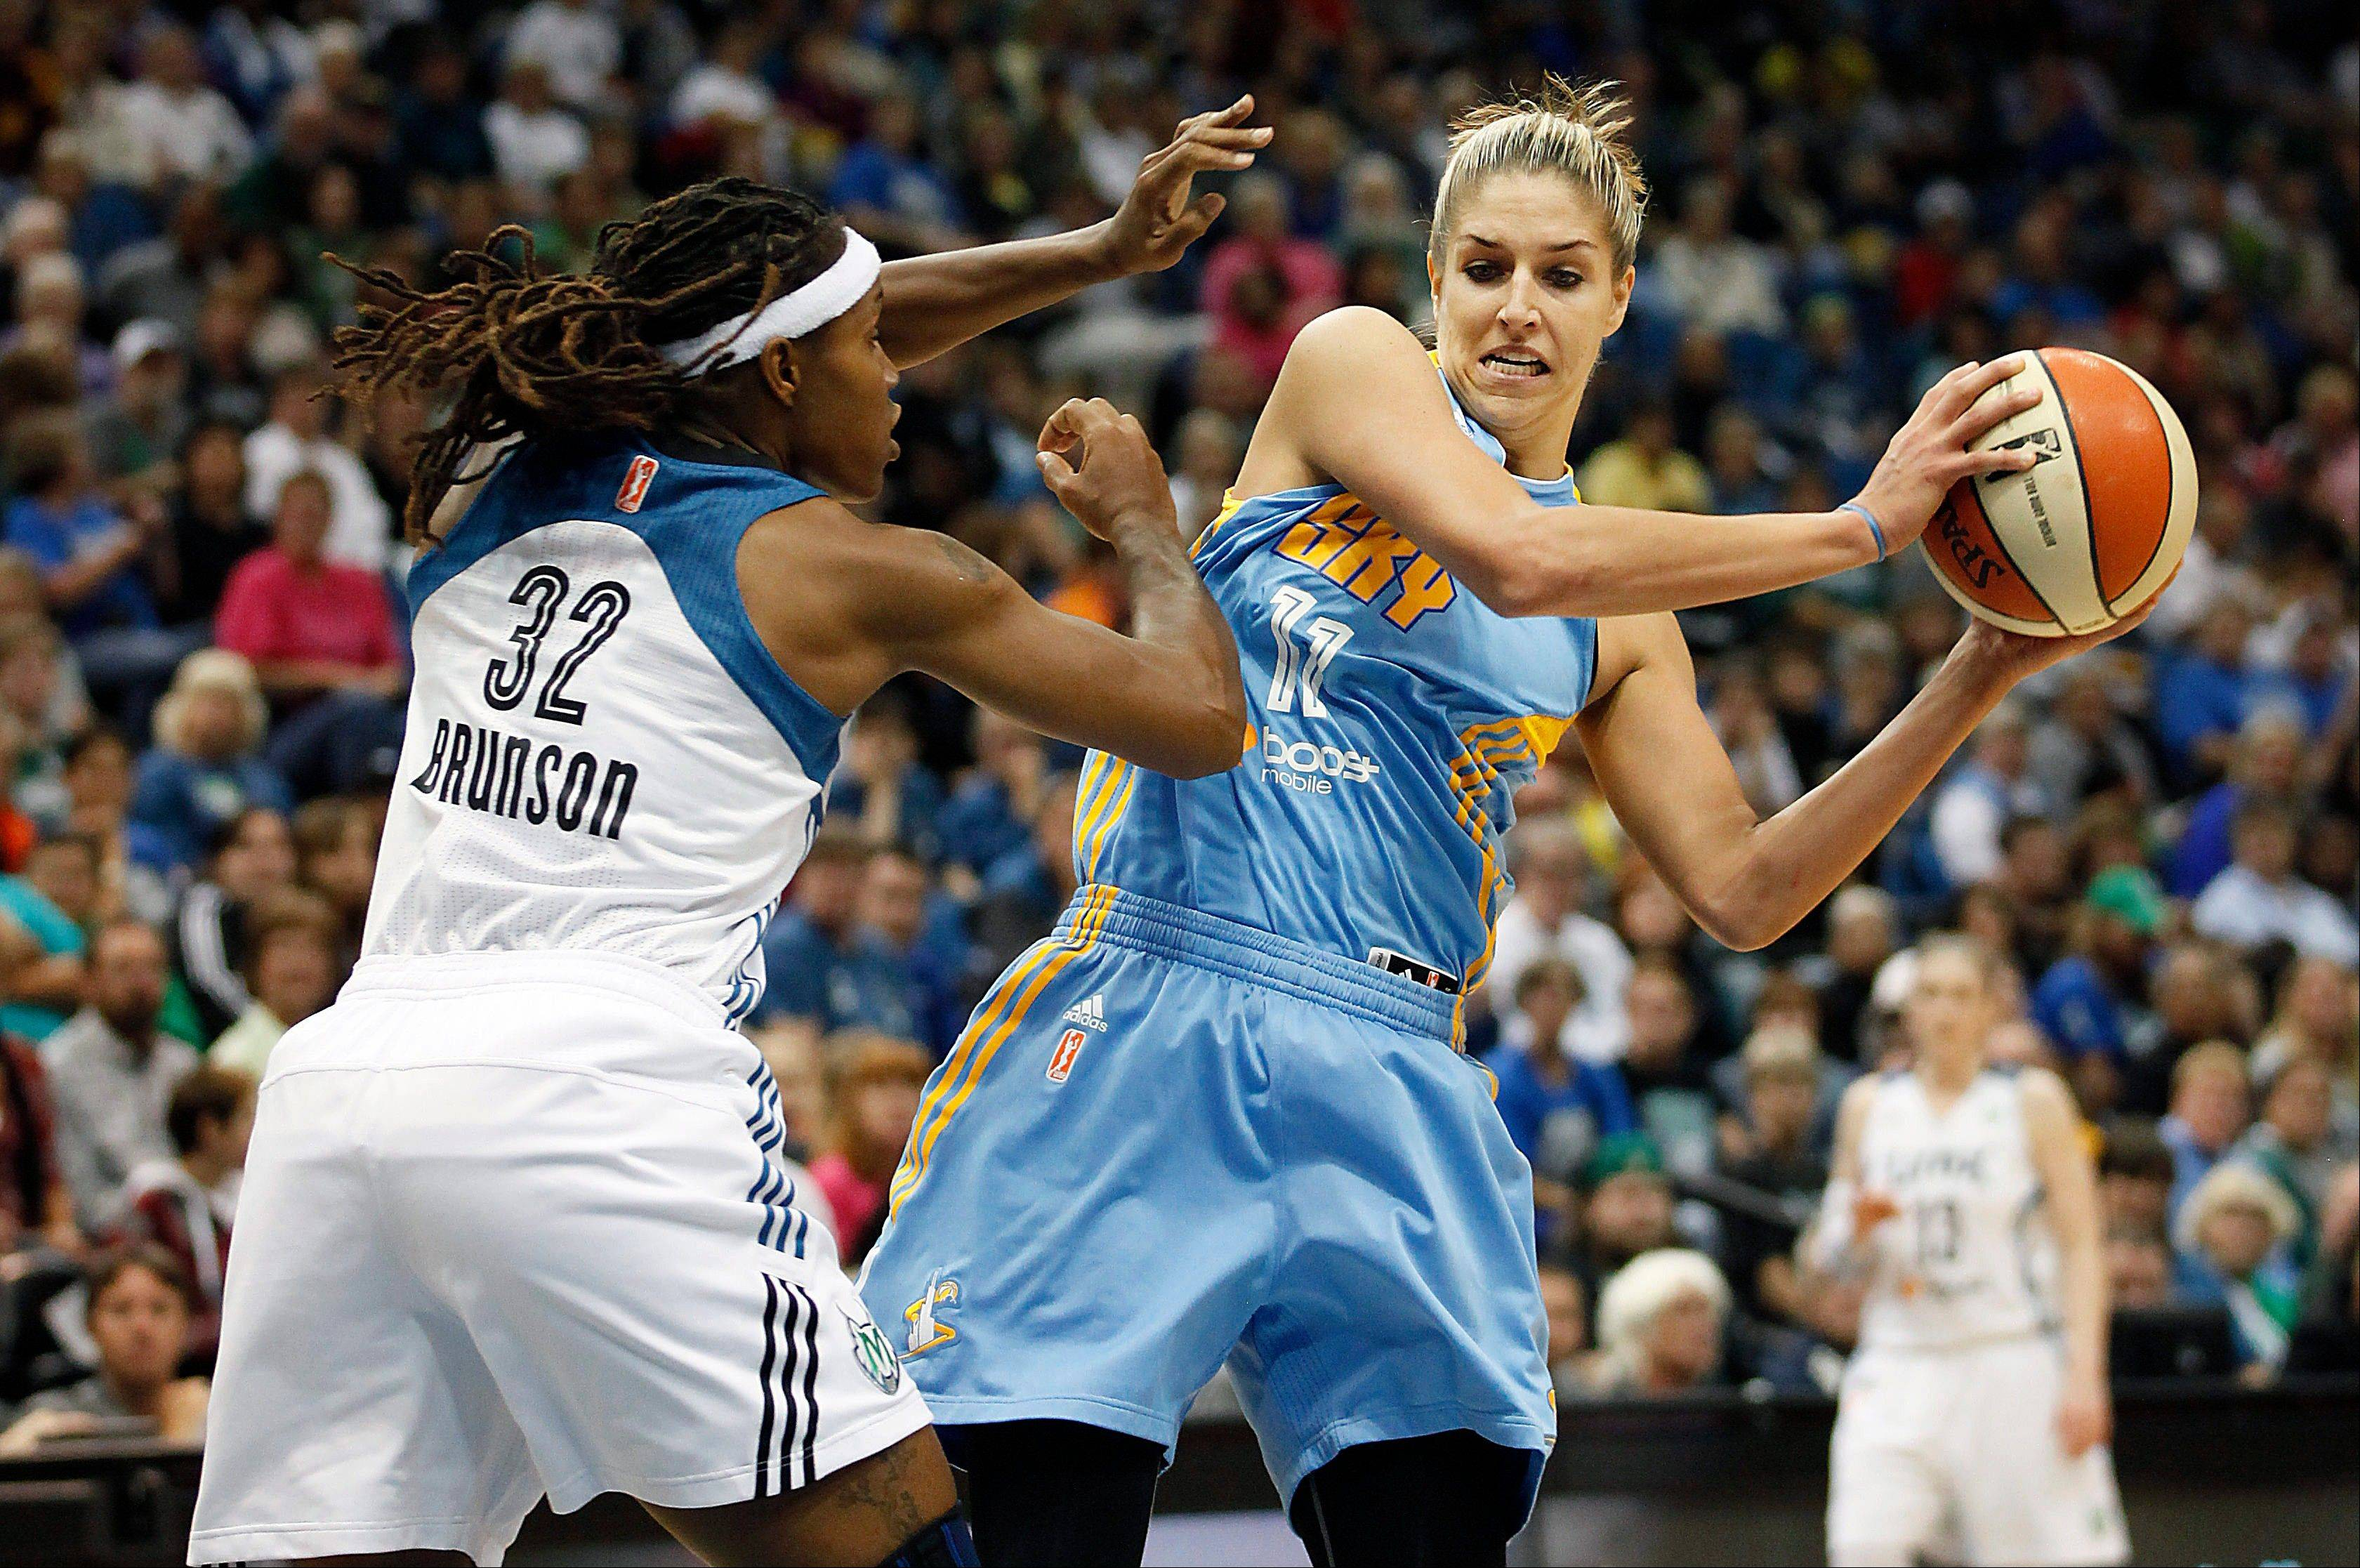 Chicago Sky guard Elena Delle Donne (11) protects the ball against Minnesota Lynx forward Rebekkah Brunson (32) in the first half of a WNBA basketball game, Saturday, Sept. 14, 2013, in Minneapolis.